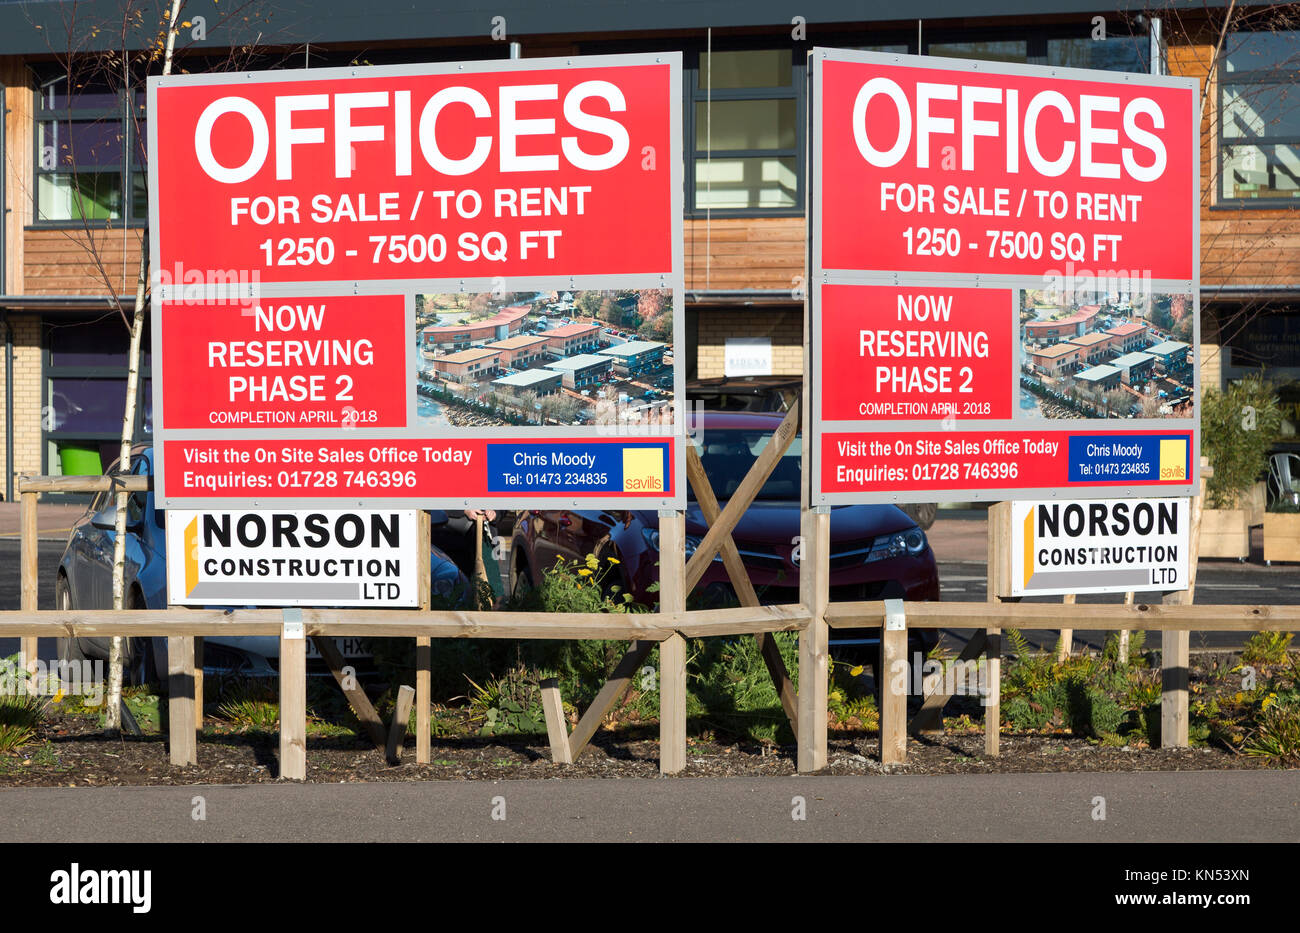 Offices for sale and rent sign, Riduna Park, Melton, Suffolk, England, UK - Stock Image